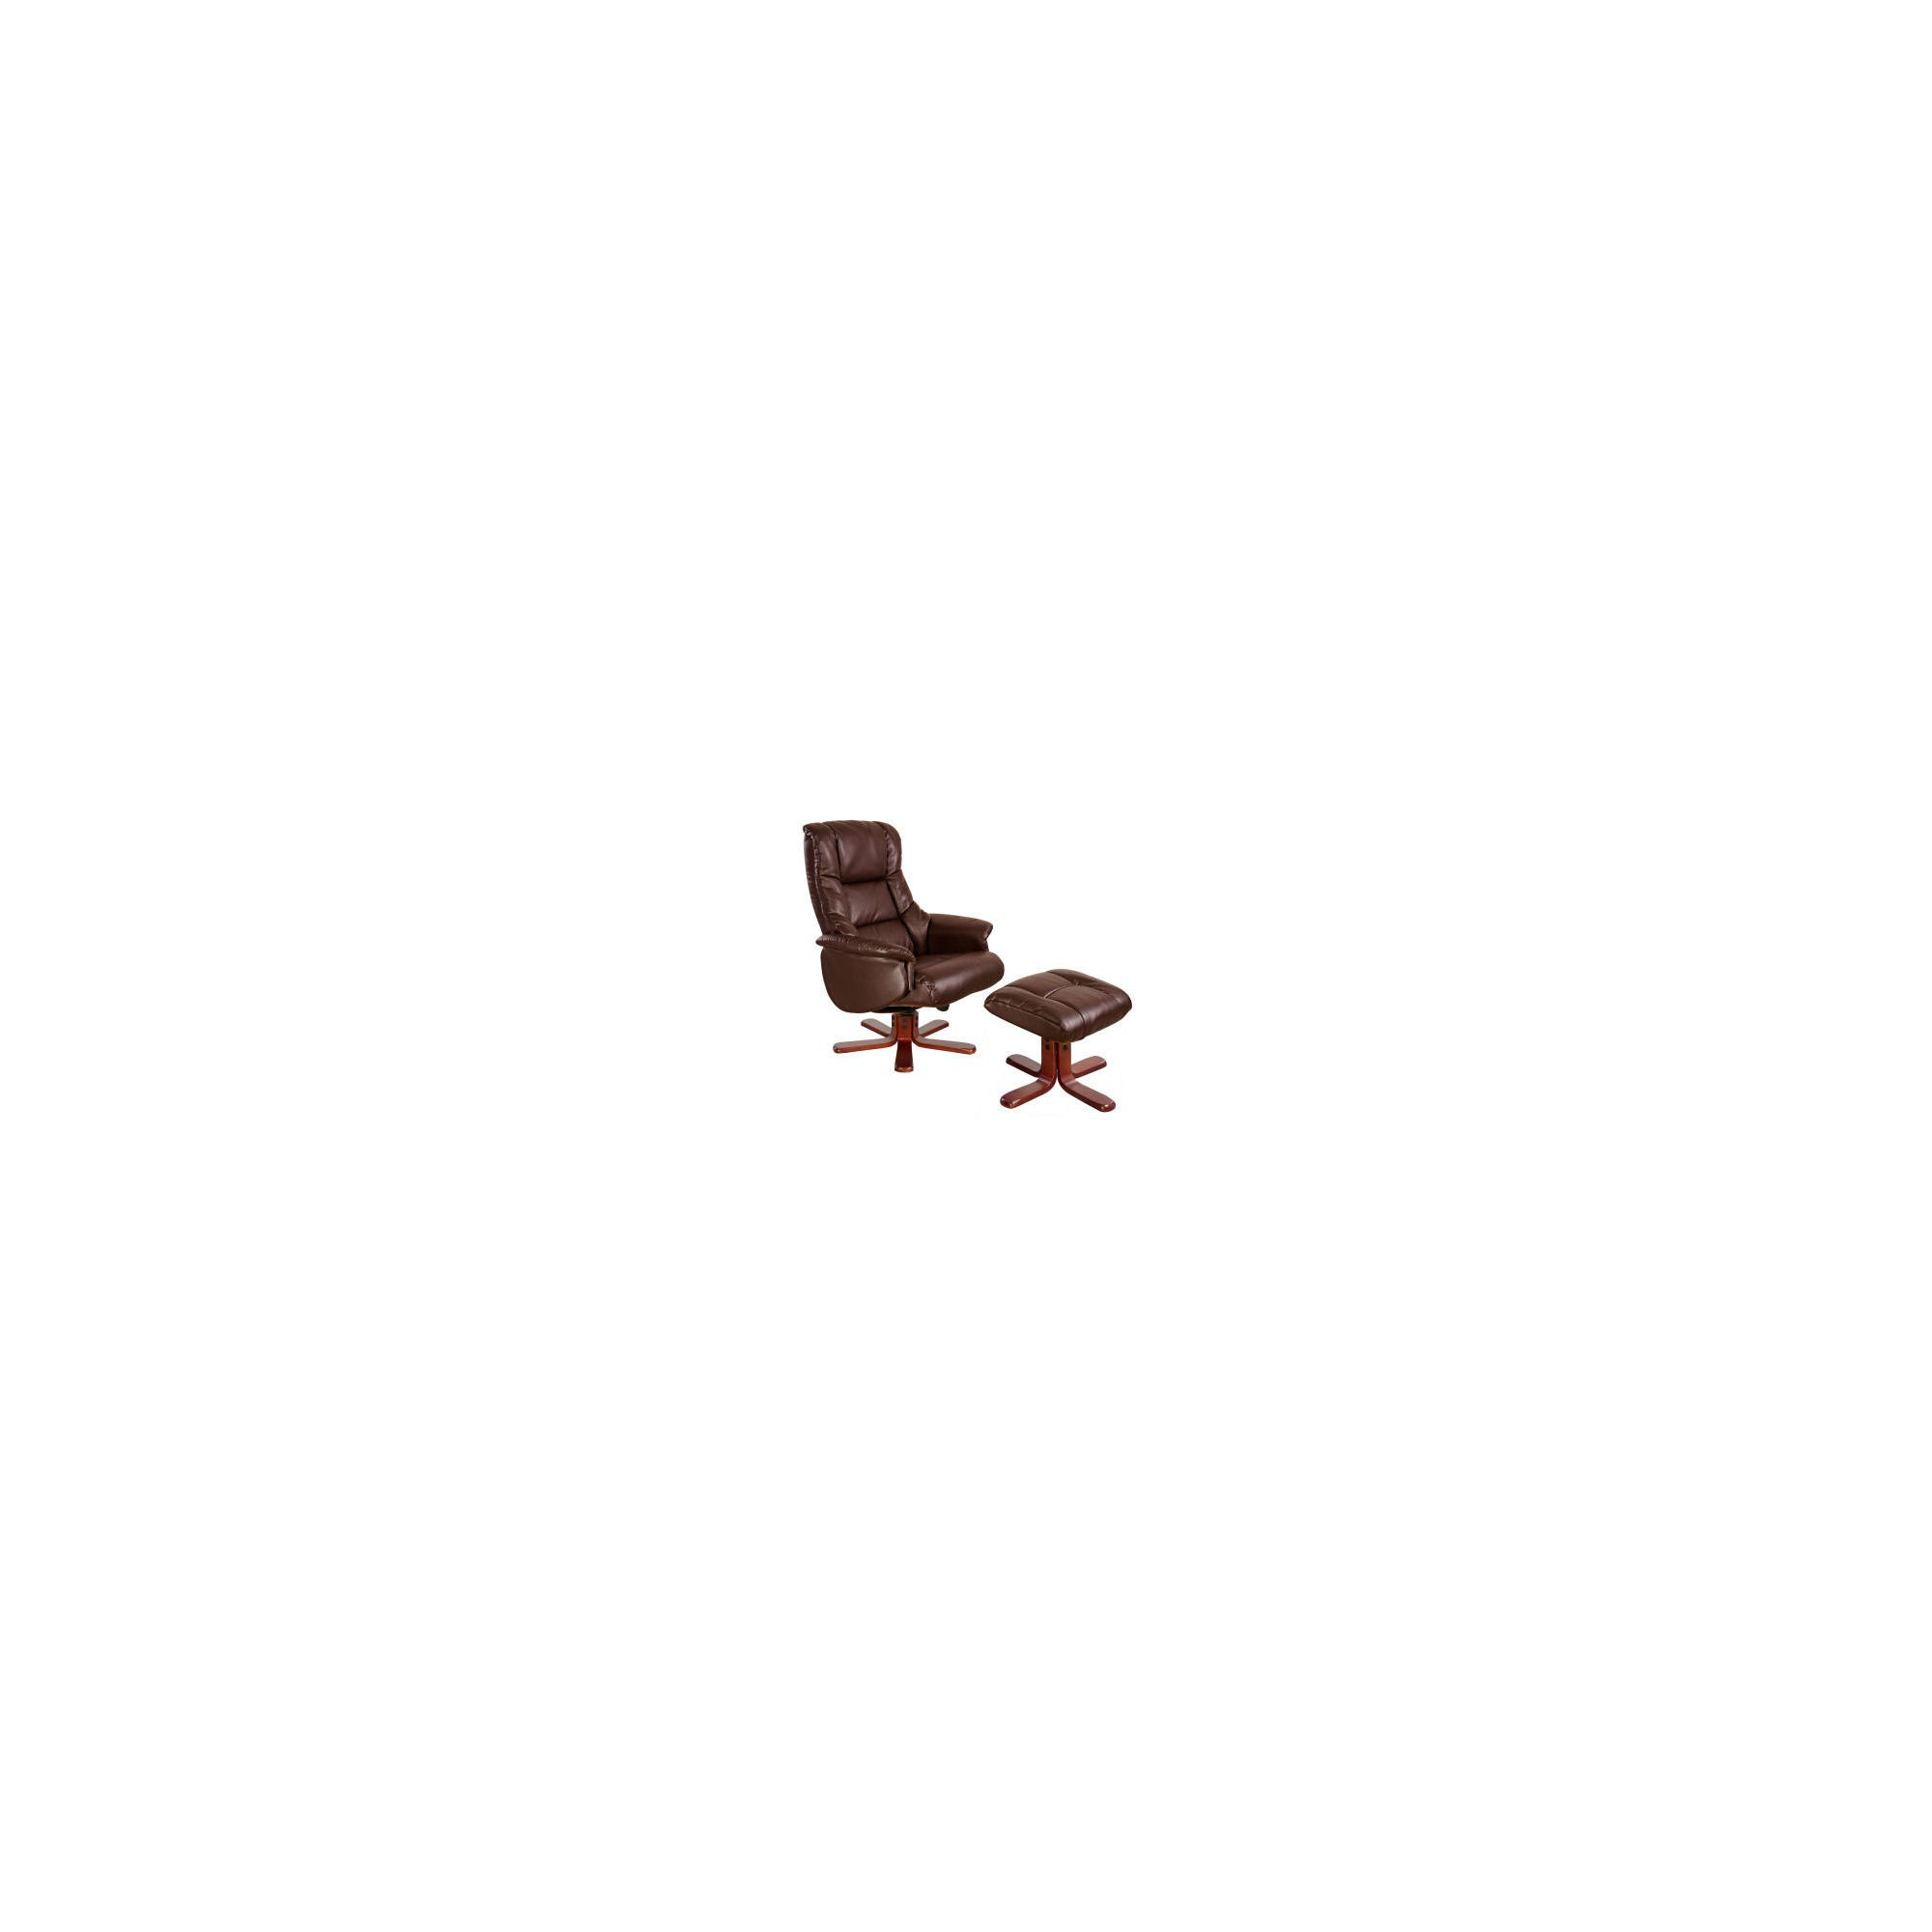 Modal Chicago Luxury Recliner in Nut Brown at Tescos Direct